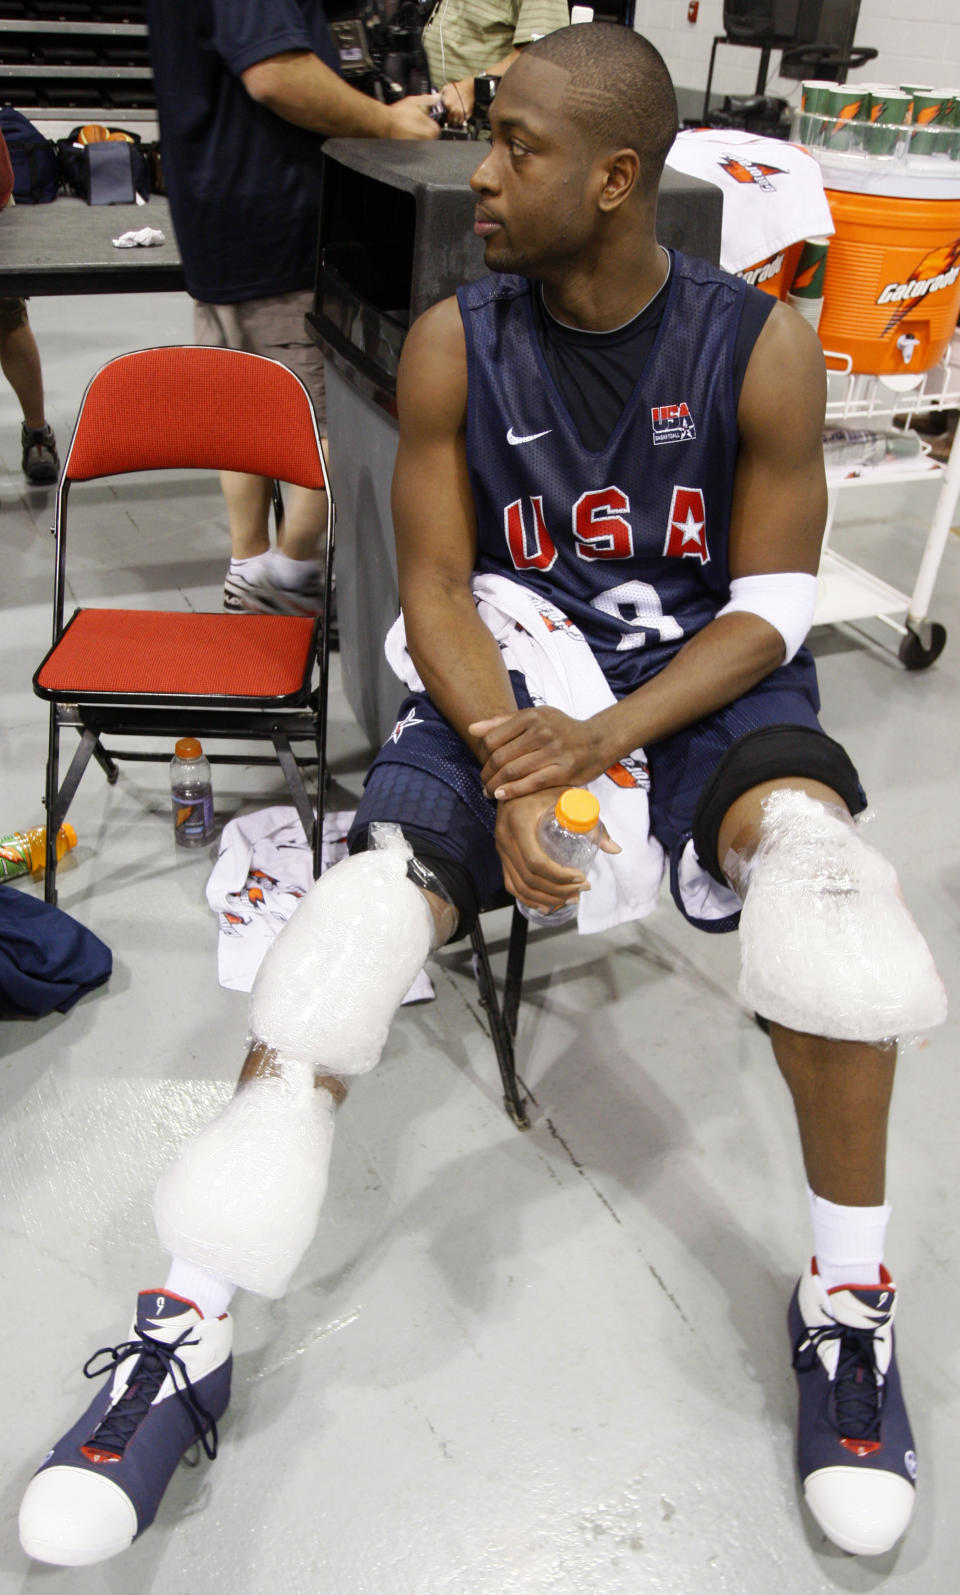 """Miami Heat star Dwyane Wade's chronic knee problems will <a href=""""http://yhoo.it/Mu9wGQ"""" rel=""""nofollow noopener"""" target=""""_blank"""" data-ylk=""""slk:keep him out of the London games."""" class=""""link rapid-noclick-resp"""">keep him out of the London games.</a> (Photo by Lucy Nicholson/Reuters)"""